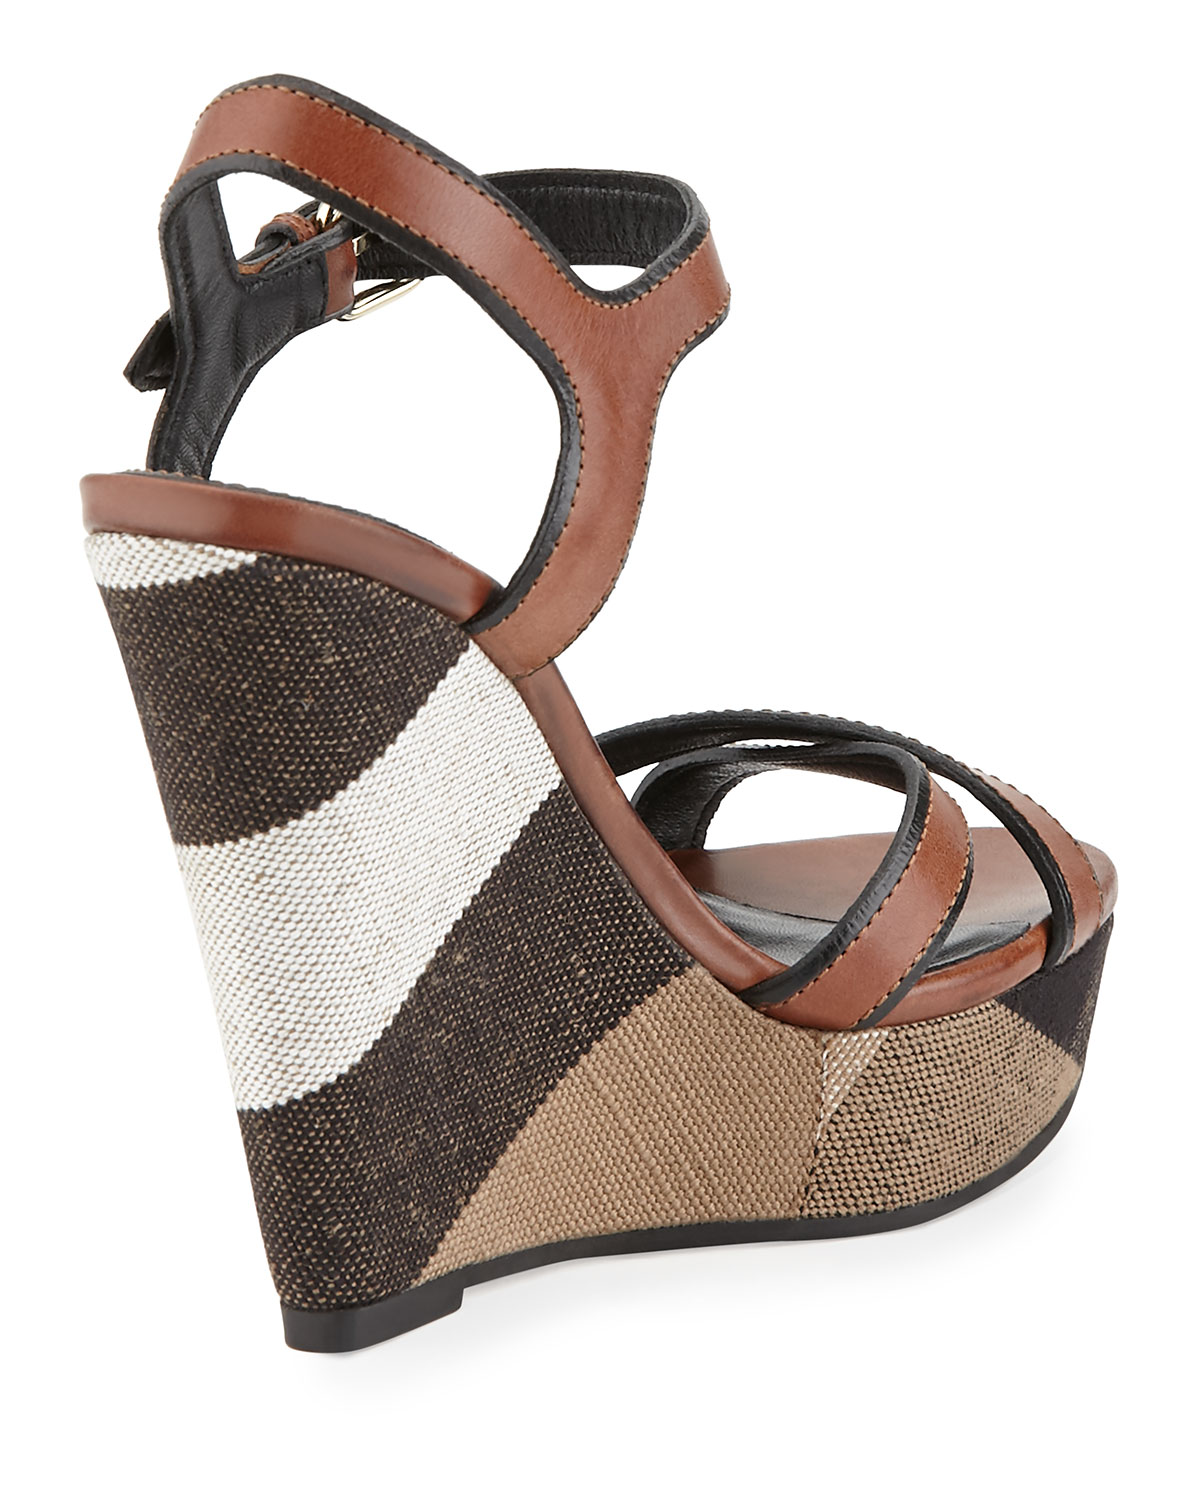 b6ebe20a23490 Burberry Whelan Crisscross Check Wedge Sandal, Dark Umber Brown | Neiman  Marcus